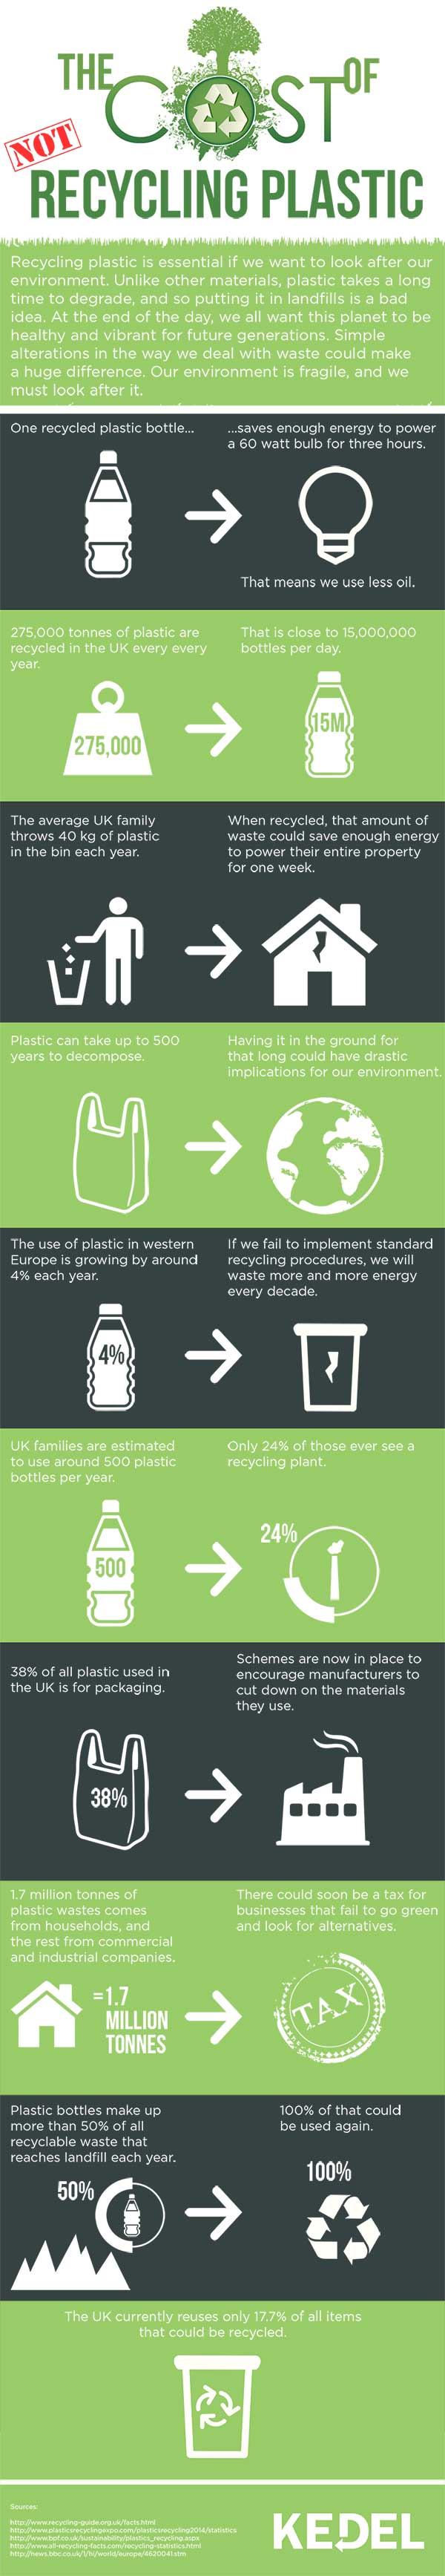 Teaching the Importance of Recycling Waste Plastic - The Facts